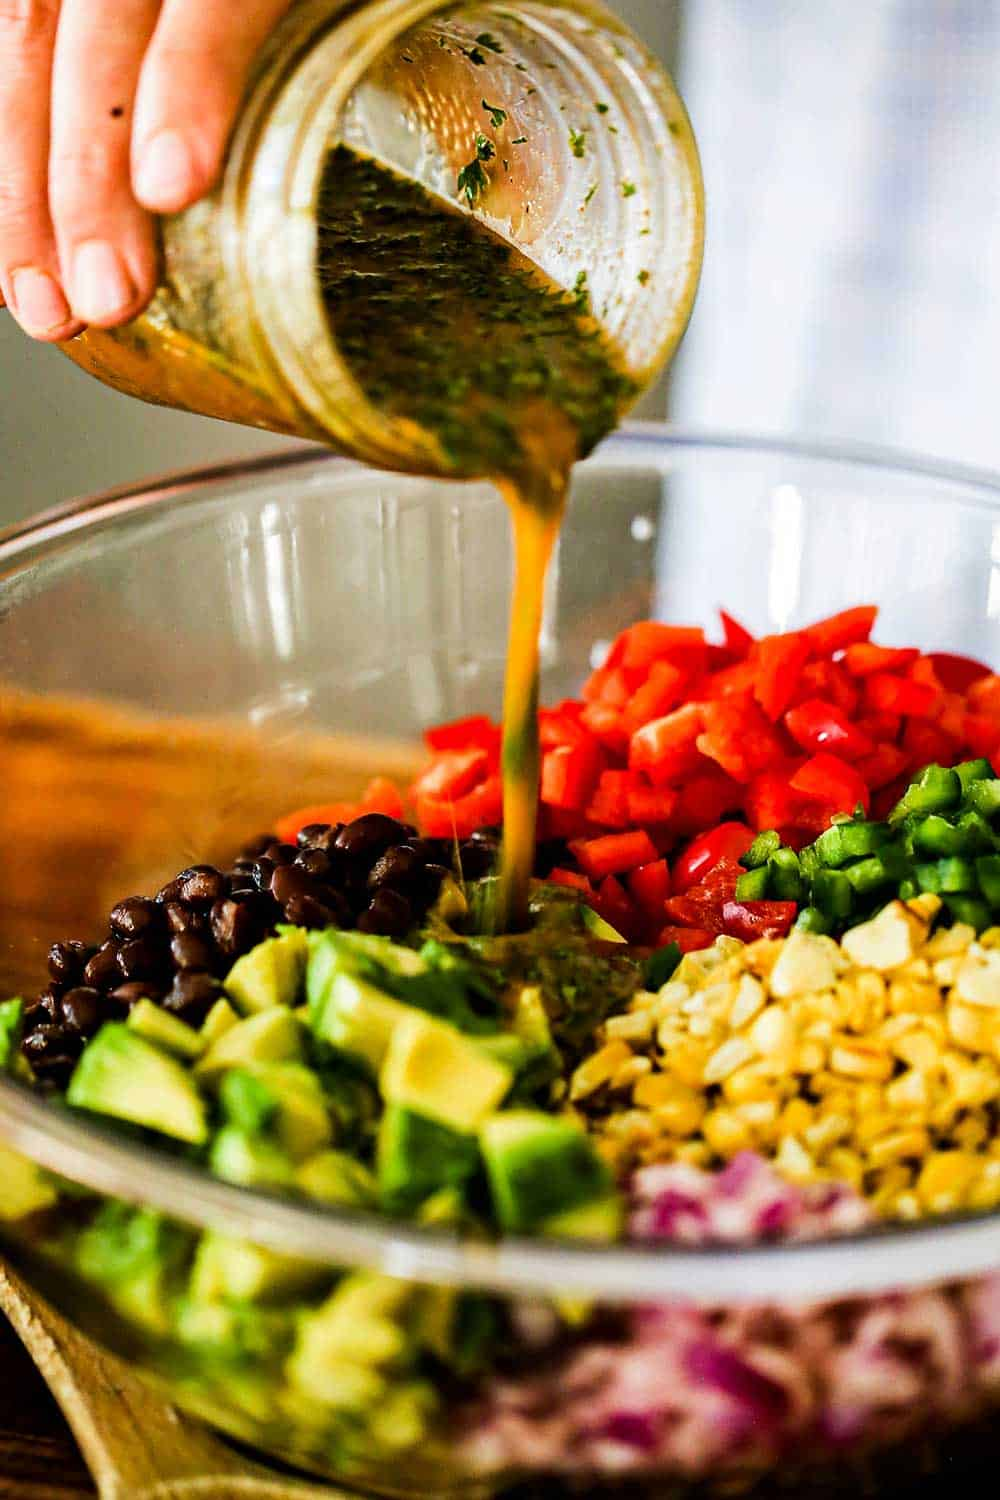 A person pouring a cilantro lime dressing from a glass jar into a glass bowl filled with black beans and cut vegetables.